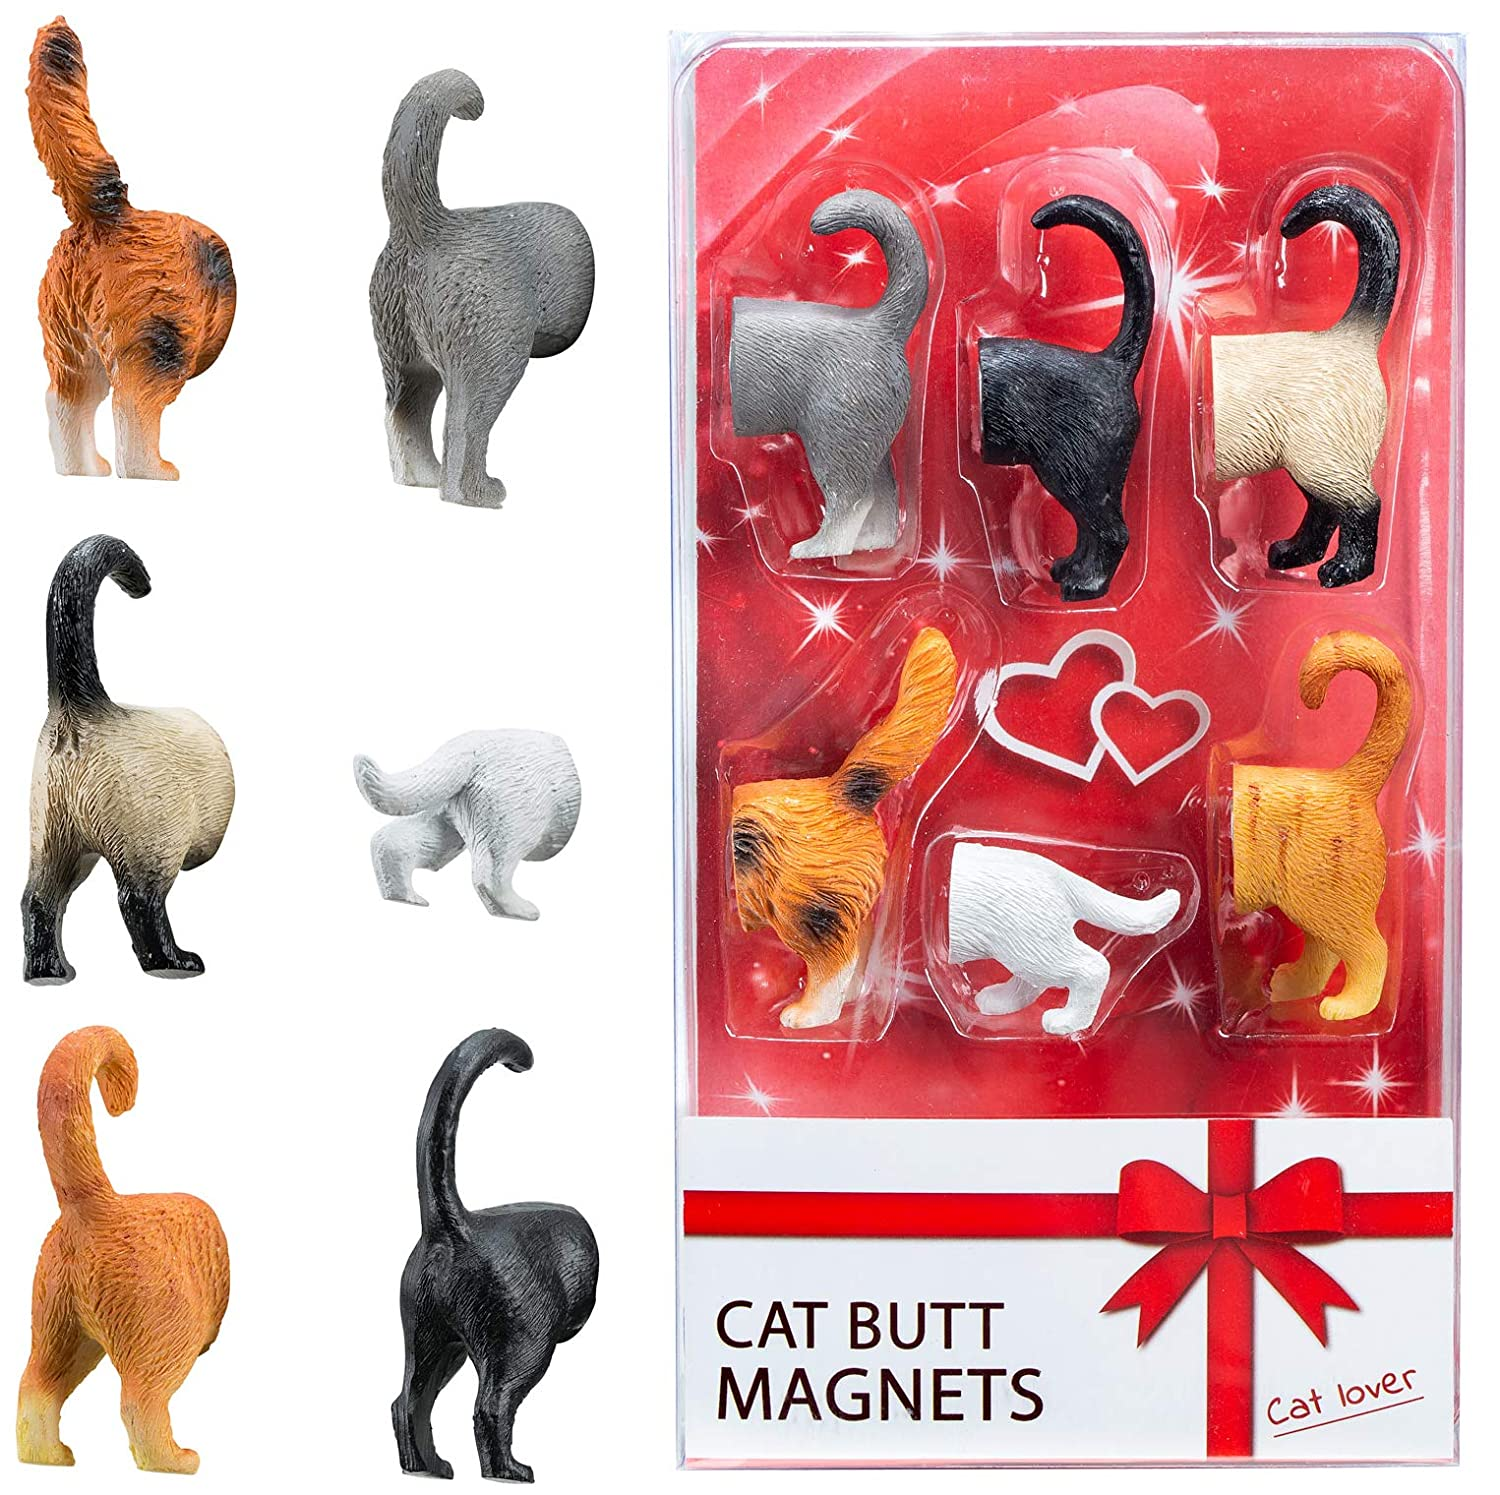 Cat Butt Refrigerator Magnets - READY GIFT SET of 6 for Cat Lovers Home and Office Decorations